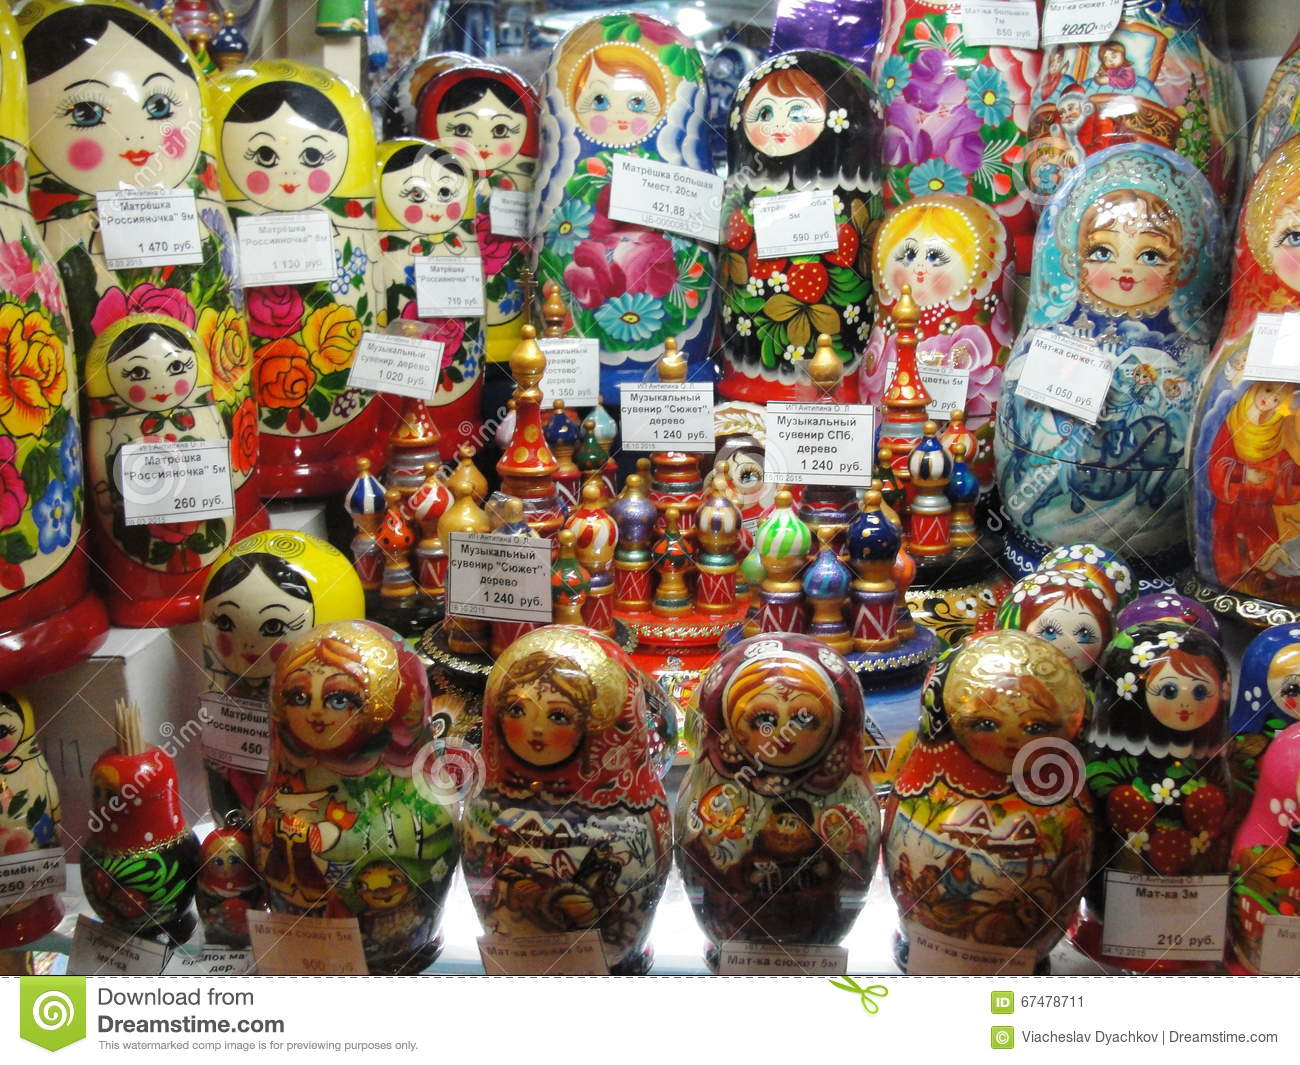 Z1771 also Editorial Photo Russian Souvenirs Sale To Tourists Window Gostiny Dvor Nevsky Prospekt Main Tourist Street St Petersburg Folk Image67478711 together with St Petersburg Hotels Radisson Royal Hotel h790555 moreover Catalog together with Catholic Church interior. on nevsky prospect